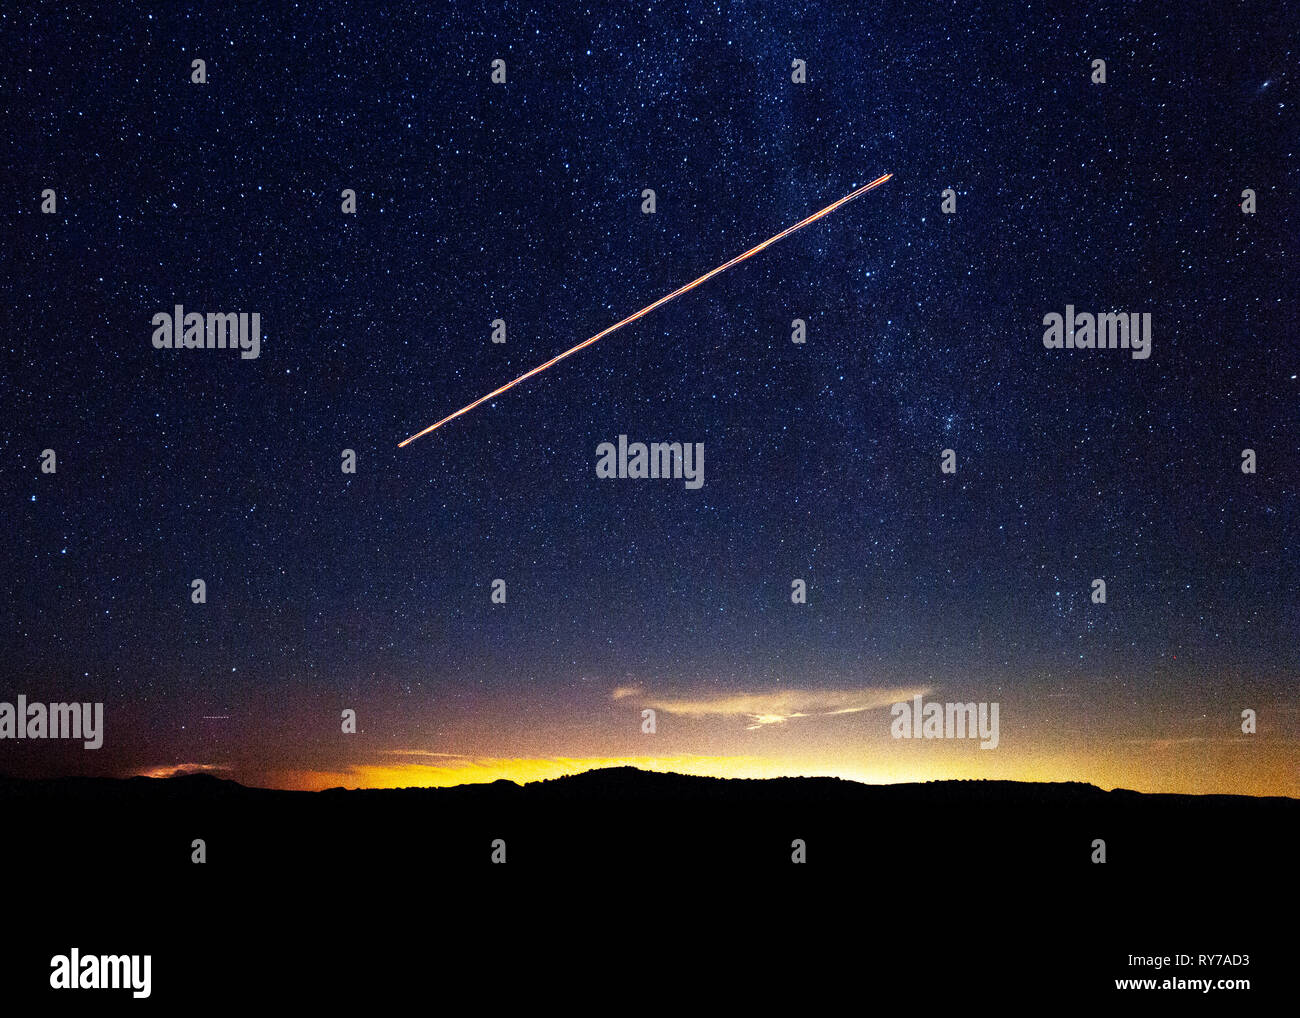 The big and bright stars over Texas. - Stock Image